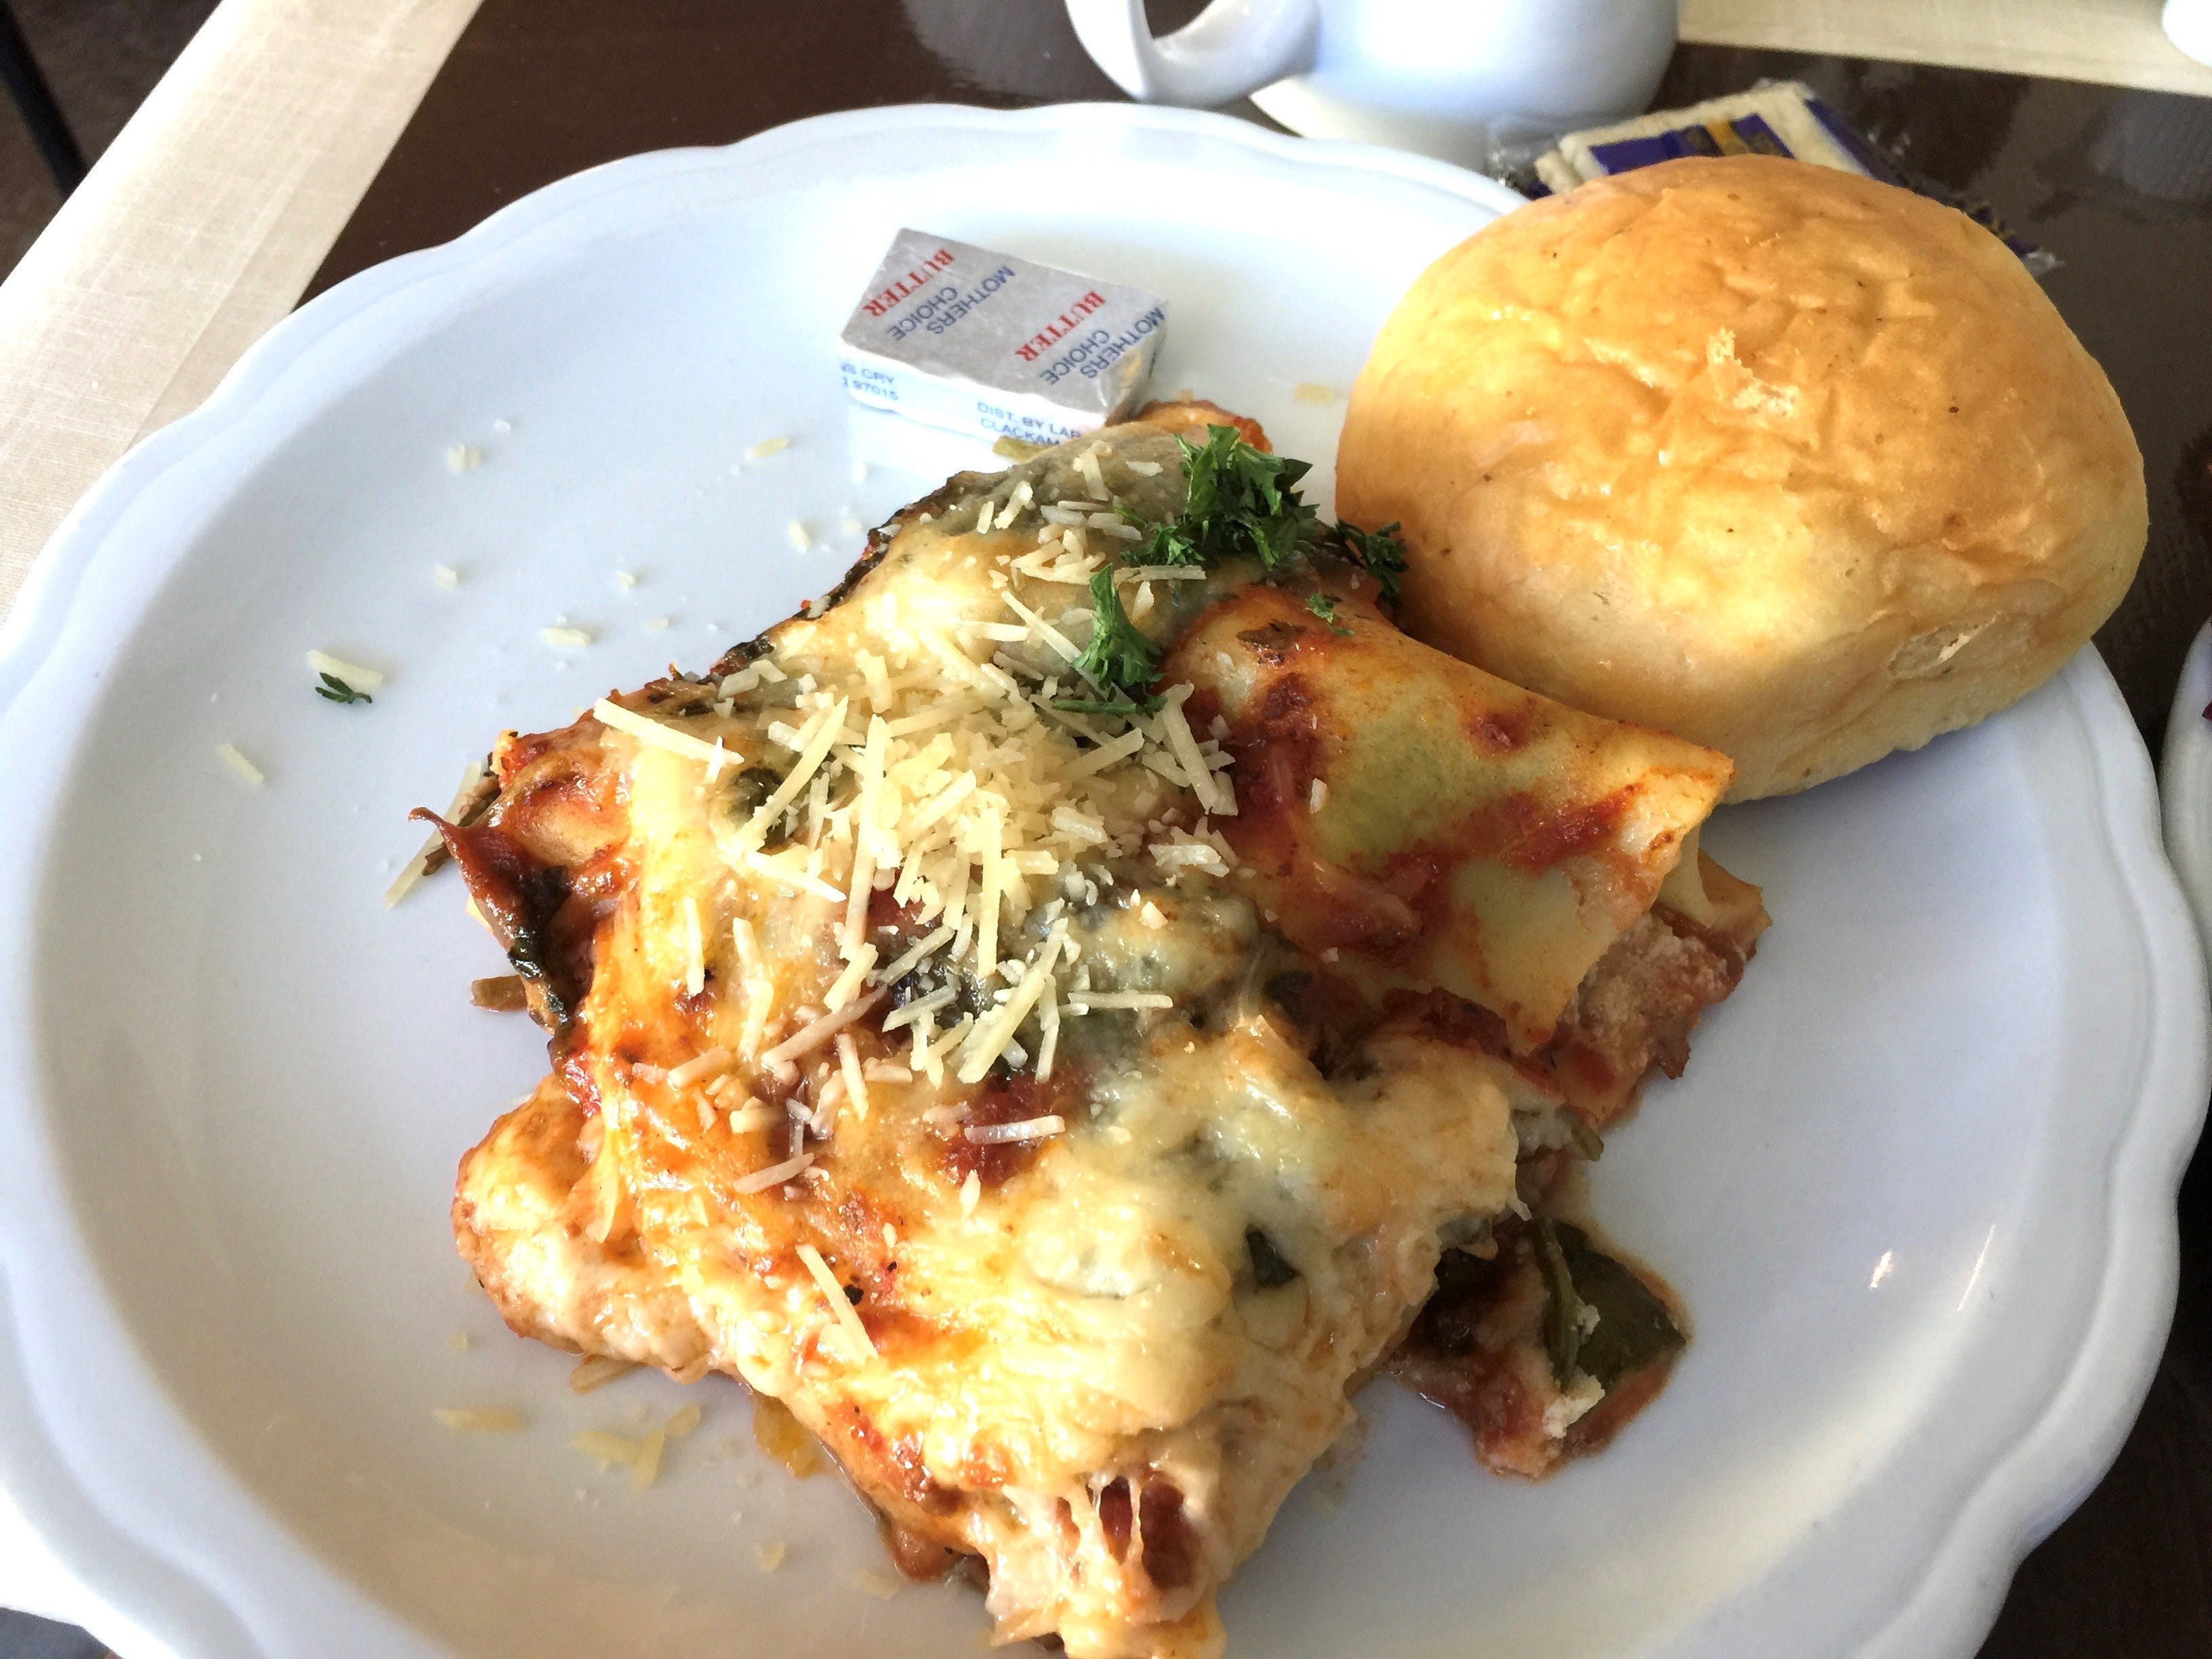 The lasagna special at The Classroom restaurant in Redding.